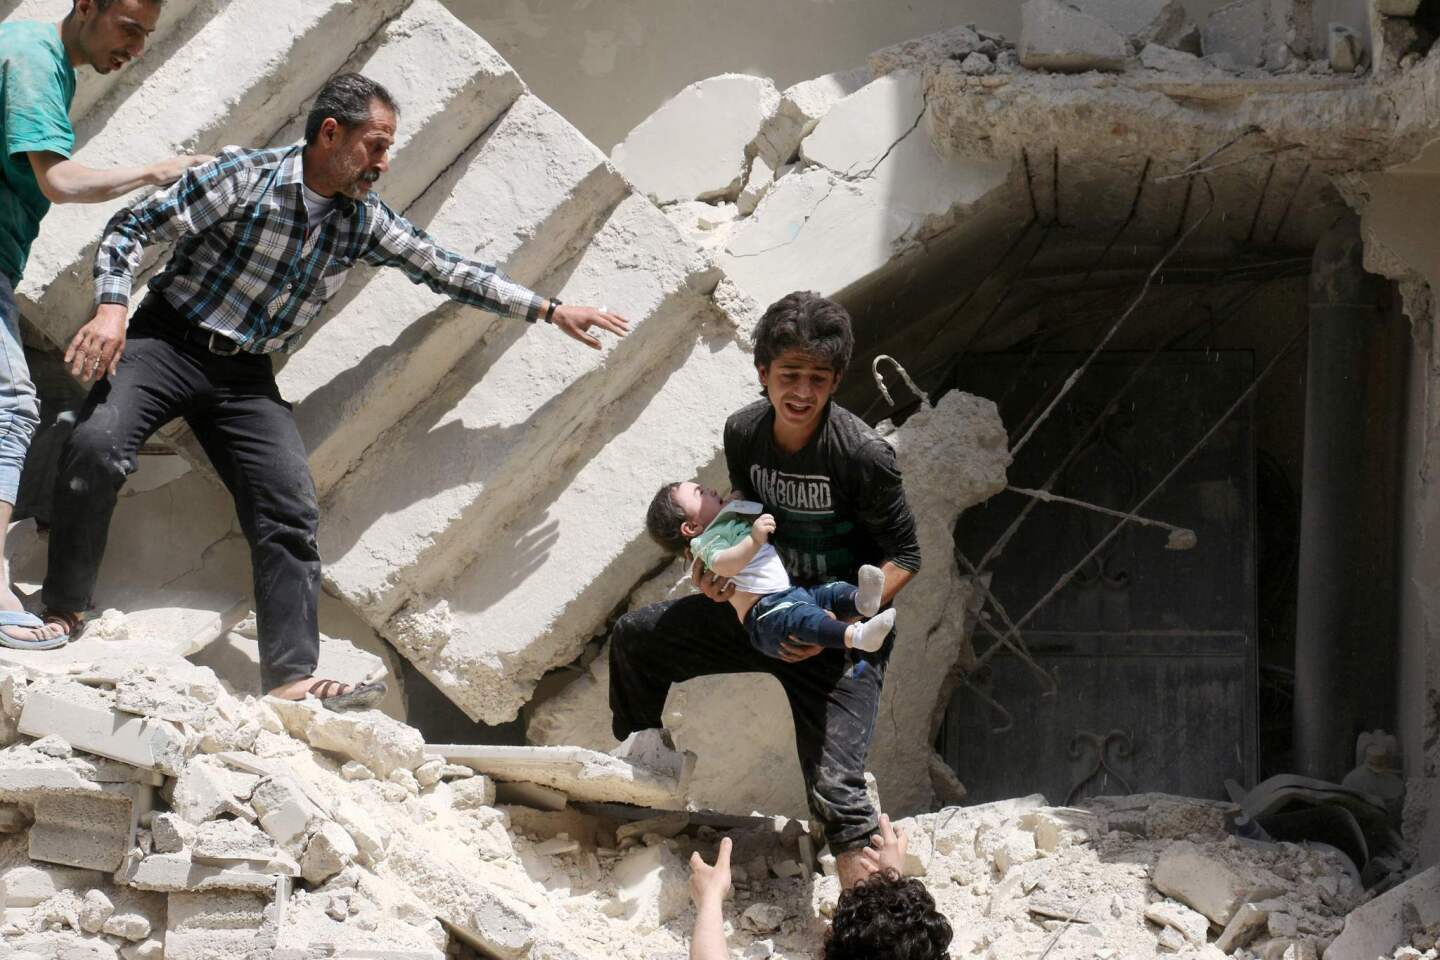 Syrians evacuate a toddler from a destroyed building after an airstrike on the rebel-held Kalasa neighborhood in the northern Syrian city of Aleppo.